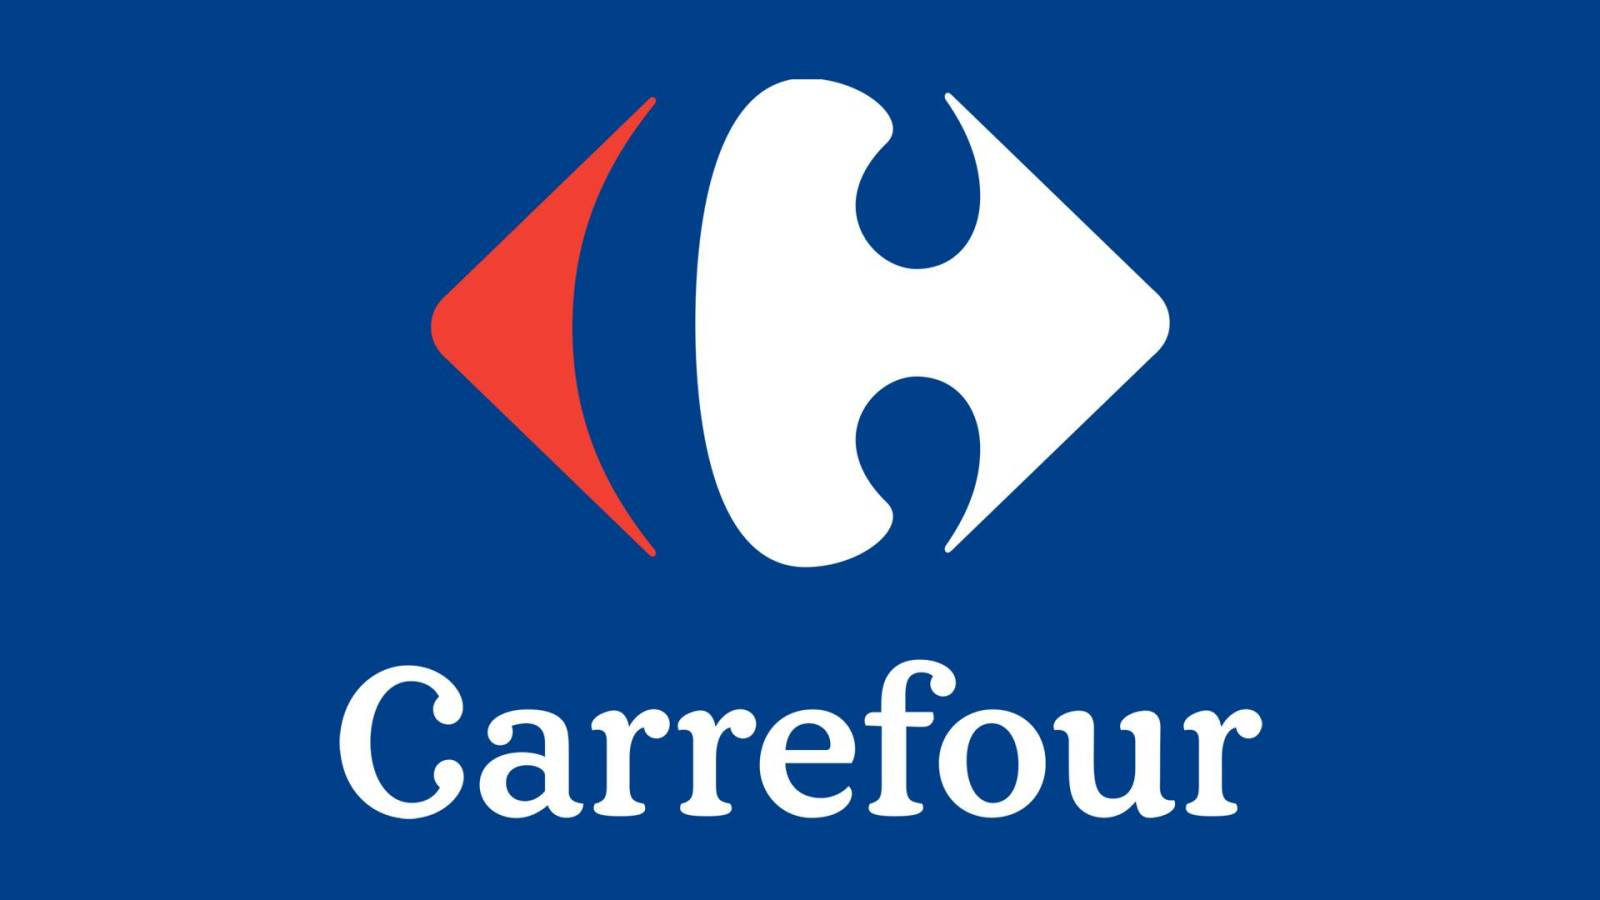 Carrefour taiere